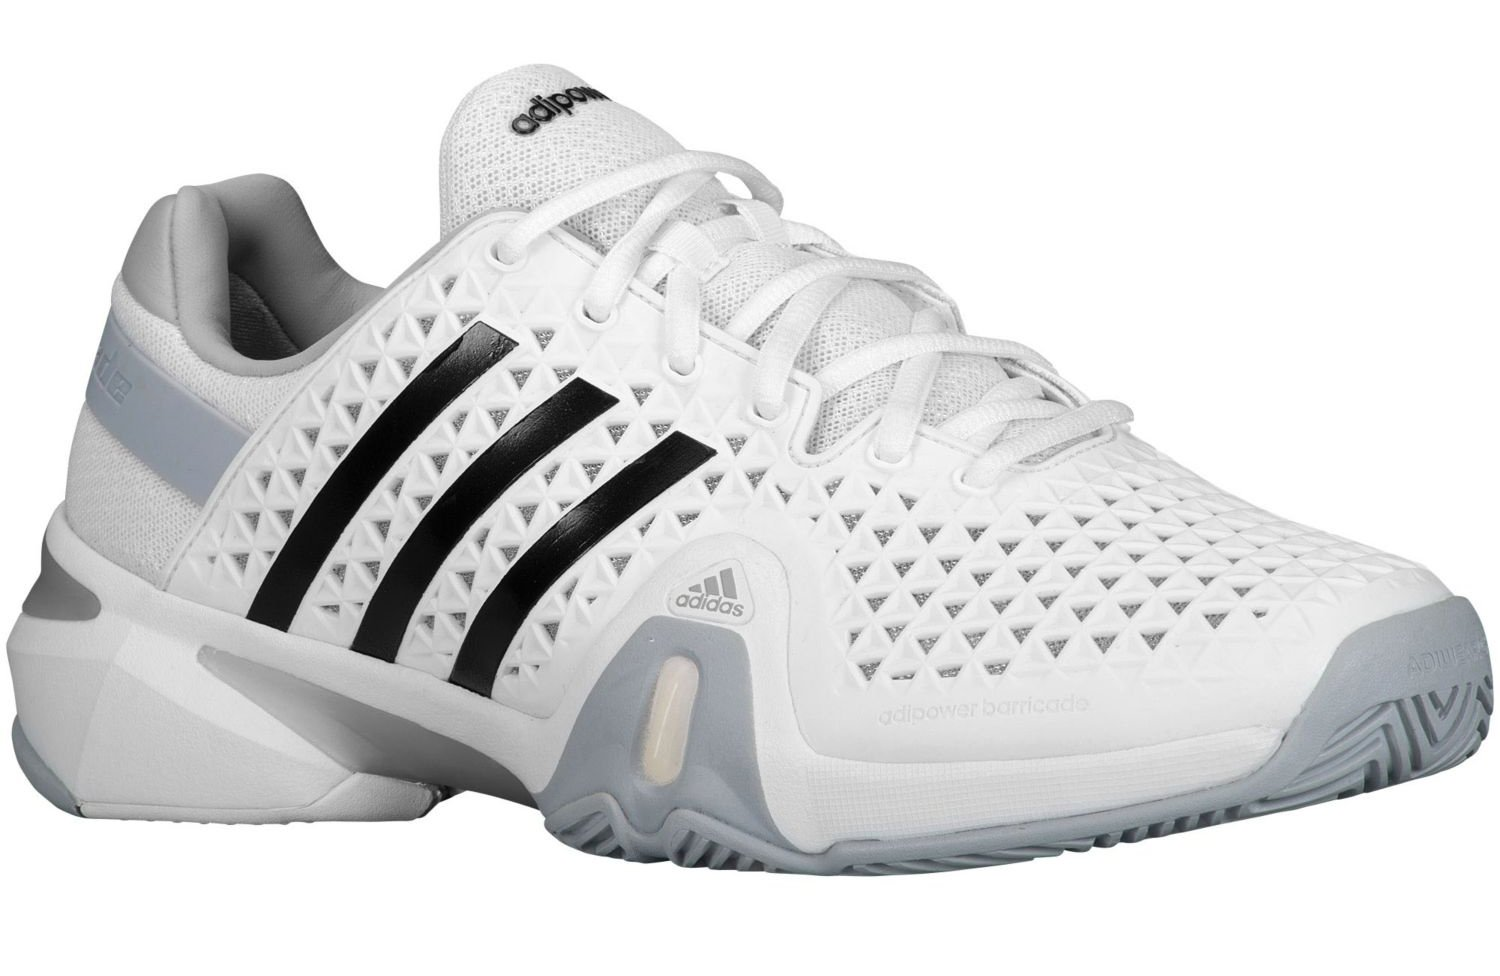 competitive price 318dd c32ca Amazon.com   Adidas Barricade 8+ Mens Tennis Shoe - Core White Black Clear  Onix (8)   Tennis   Racquet Sports